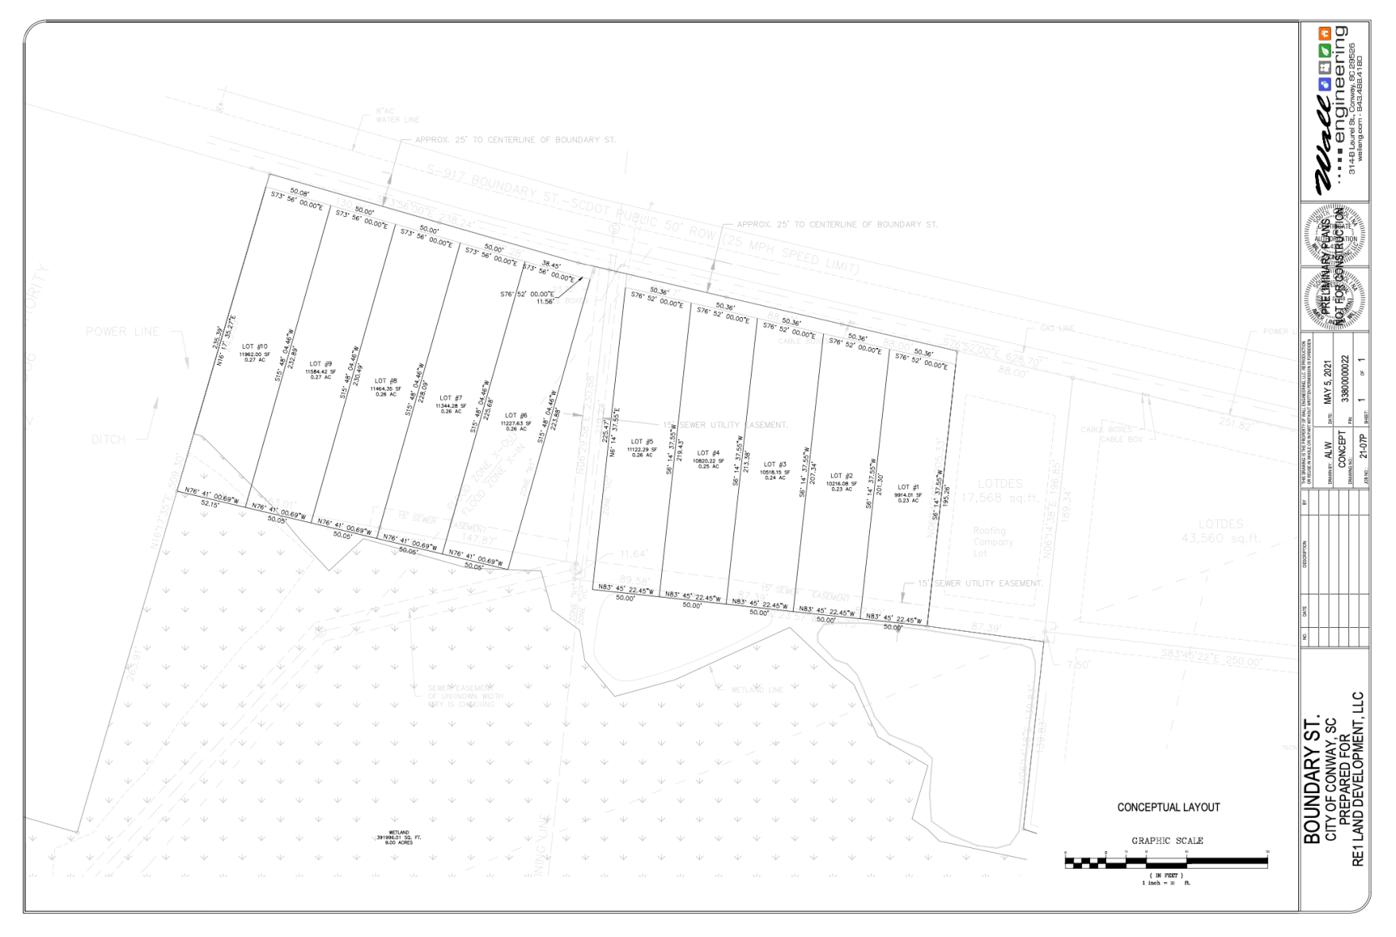 Mill Pond Road plans